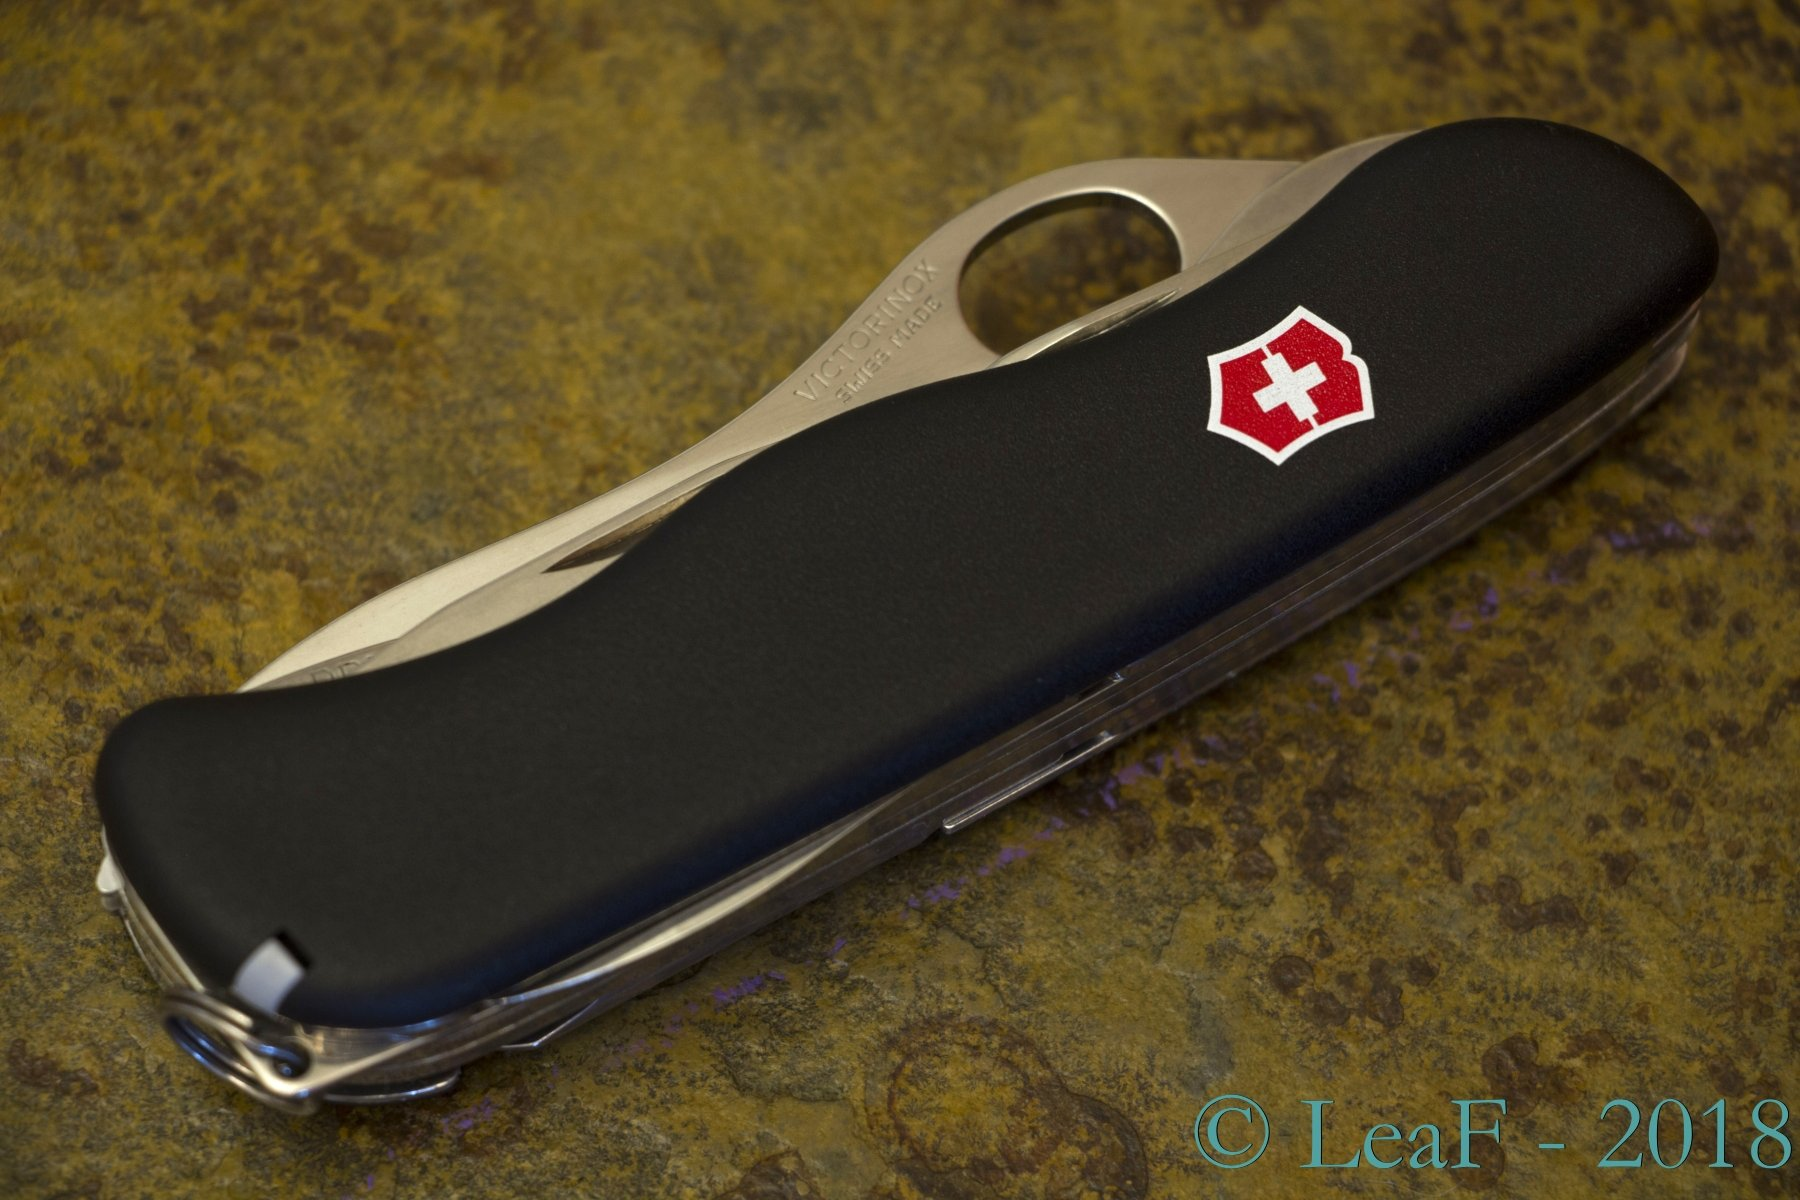 434 Locksmith Oh Leaf S Victorinox Knives Collection